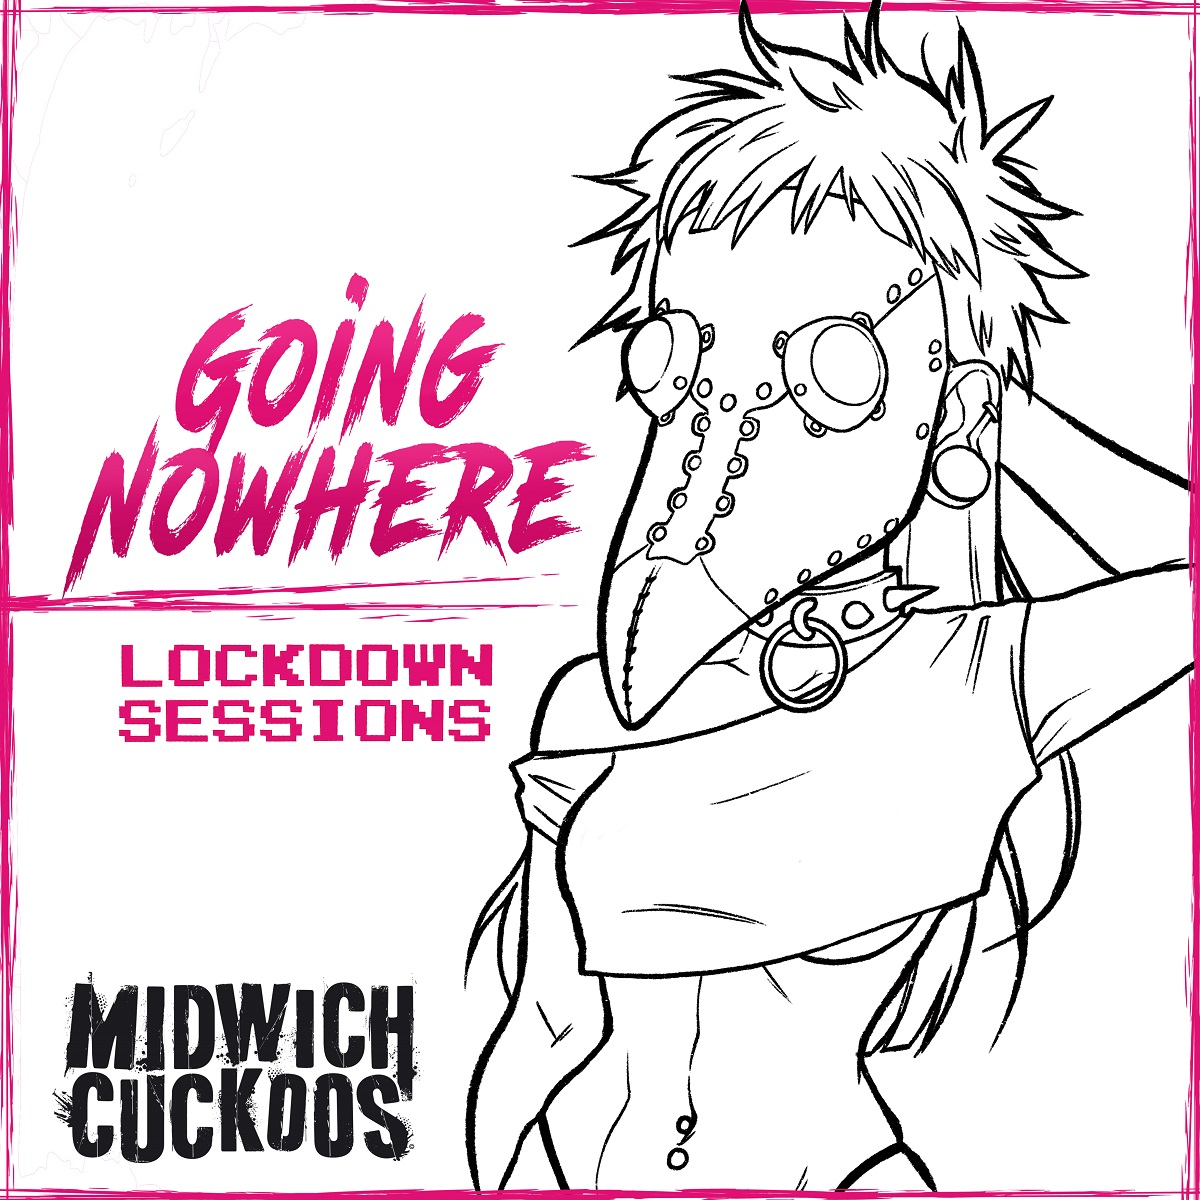 Review: Midwich Cuckoos – Going Nowhere (Lockdown Sessions) EP